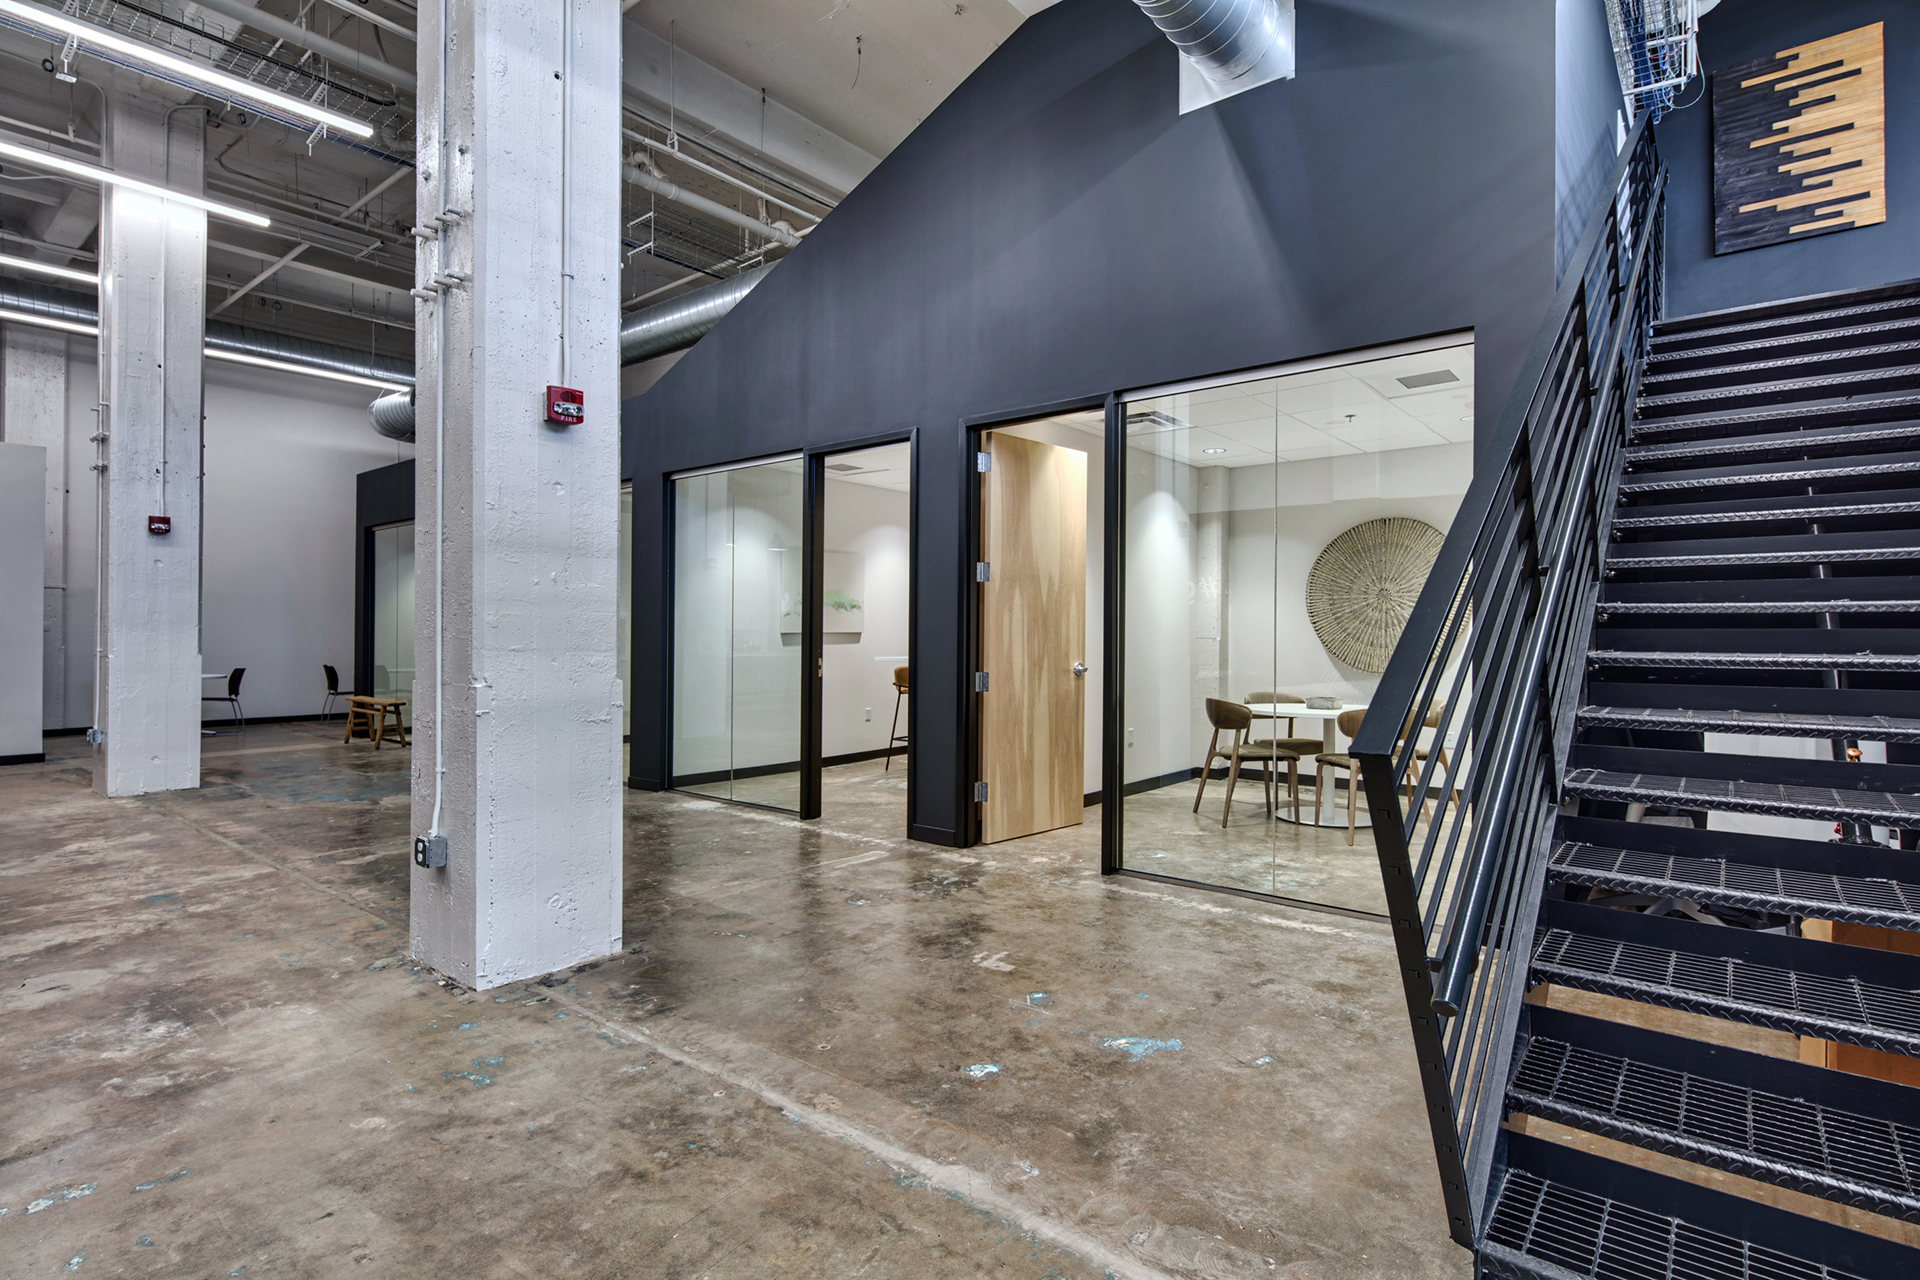 Lobby with staircase and view of office spaces at The Denham Building loft apartments for rent in South Birmingham, AL